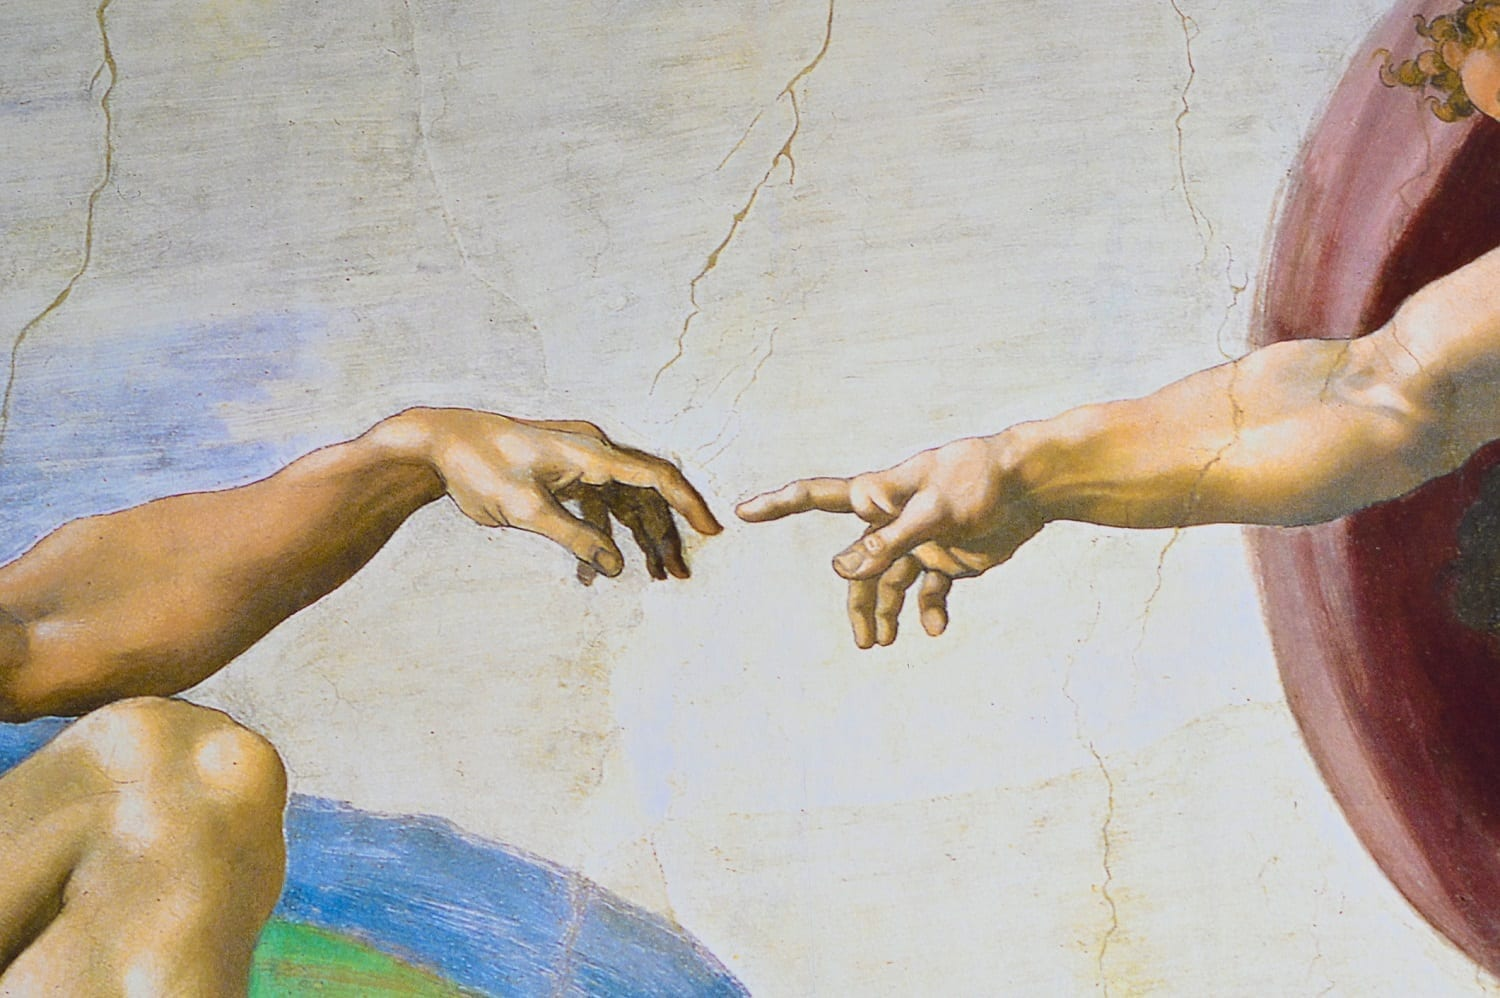 God touching Adam's finger closeup of Michaelangelo's Sistine Chapel ceiling: ID 160399961 © Vieriu Adrian | Dreamstime.com